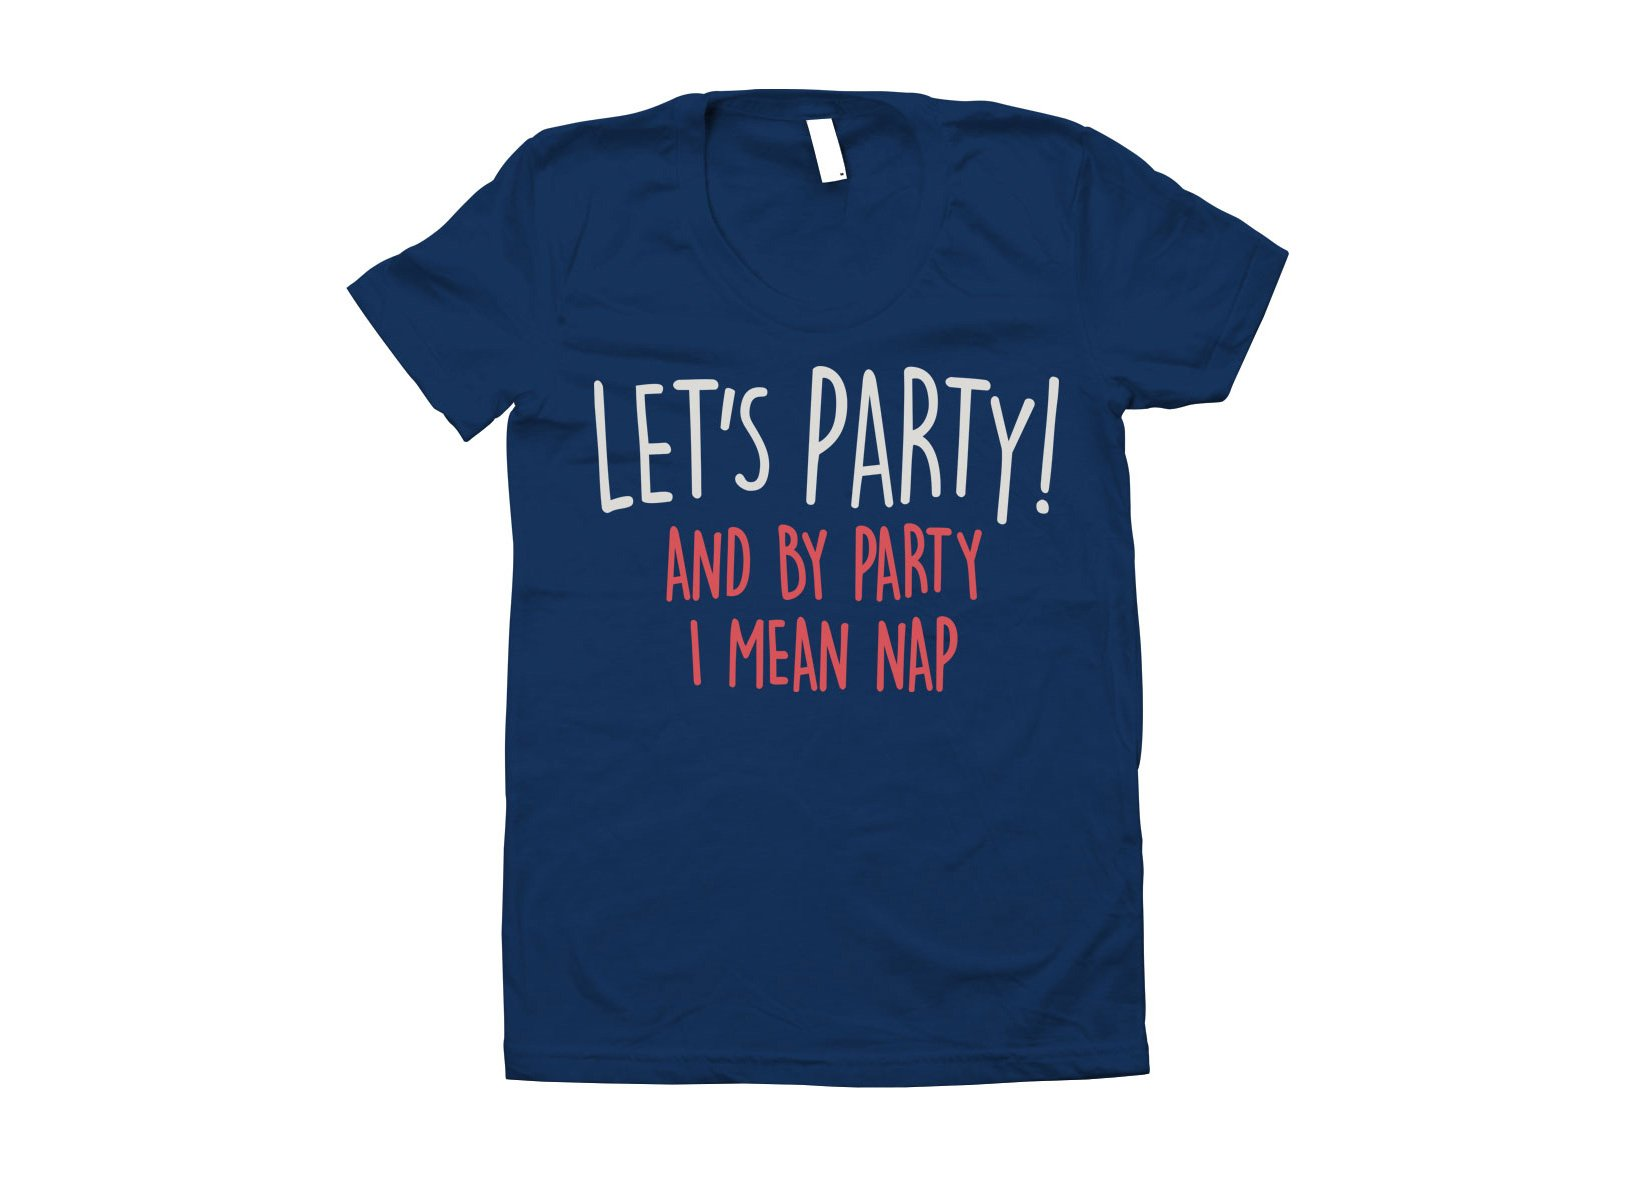 Let's Party! And By Party I Mean Nap on Juniors T-Shirt